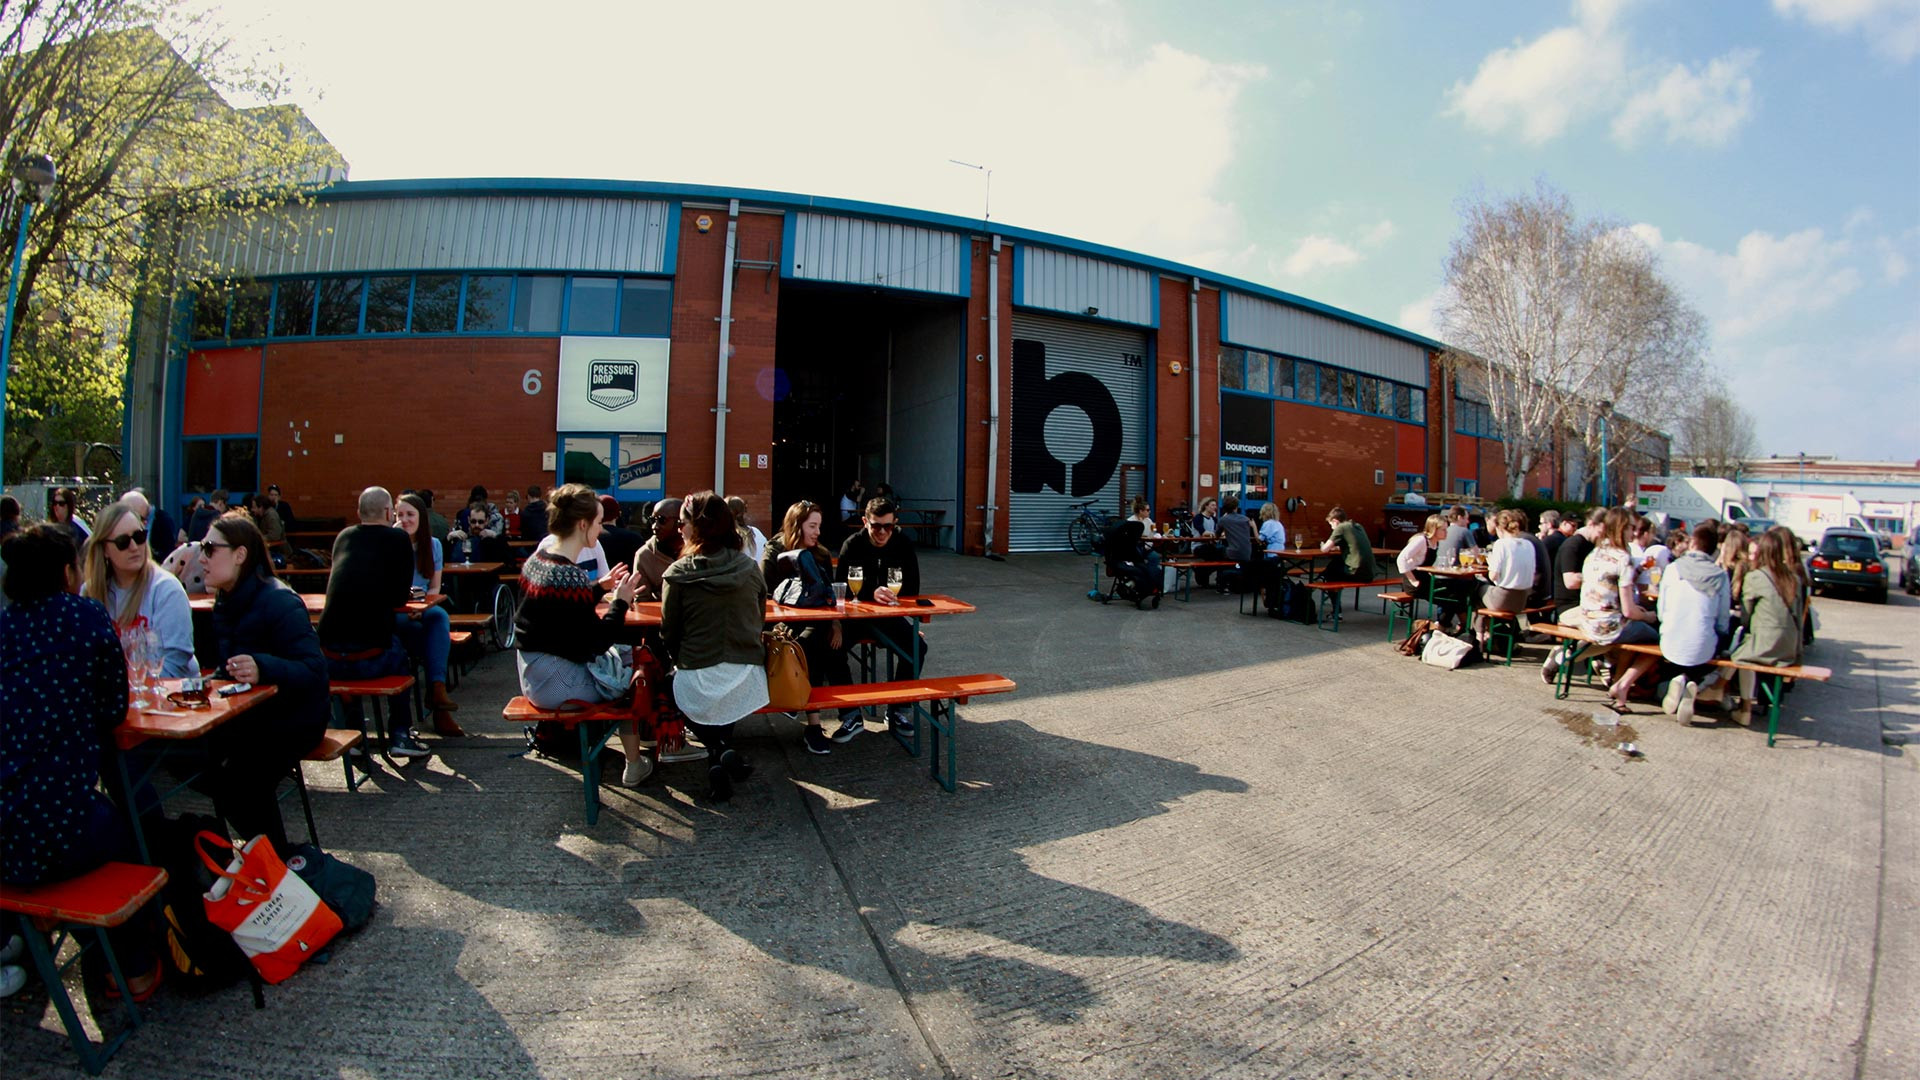 The beer garden at Pressure Drop brewery in Tottenham, London